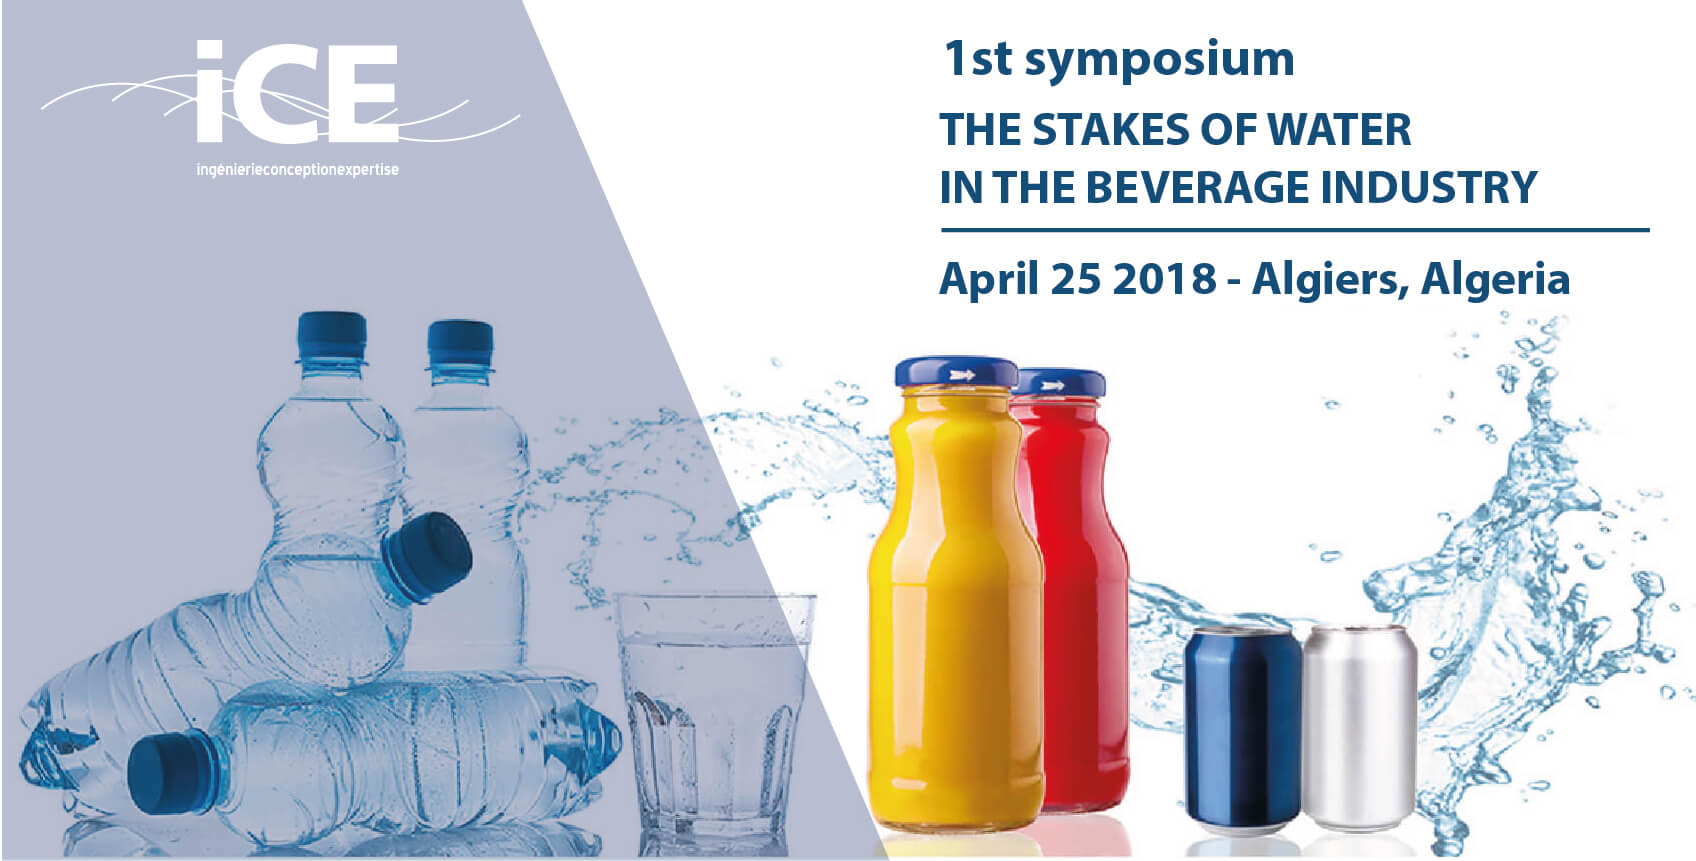 symposium the stakes of water